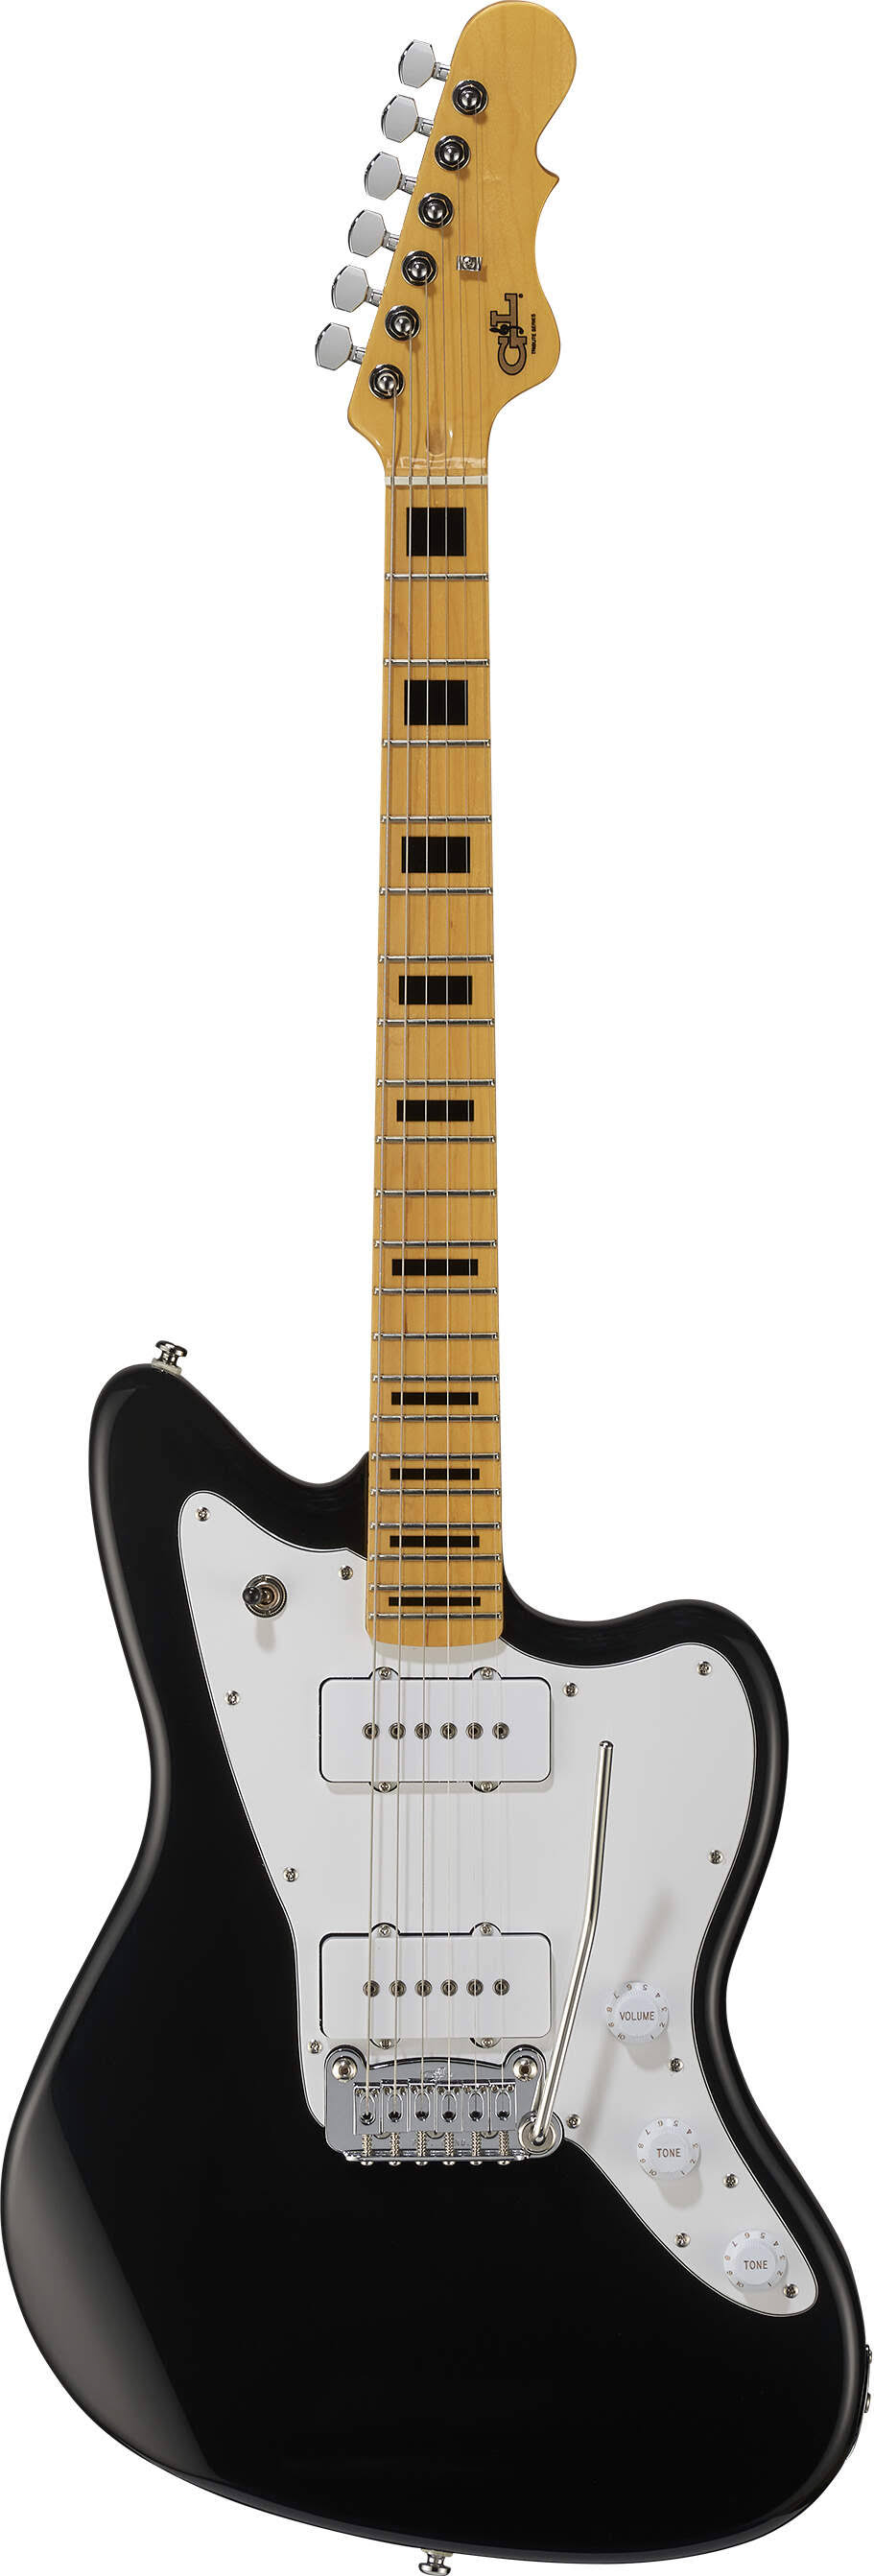 G&L Tribute Doheny Electric Guitar, Jet Black